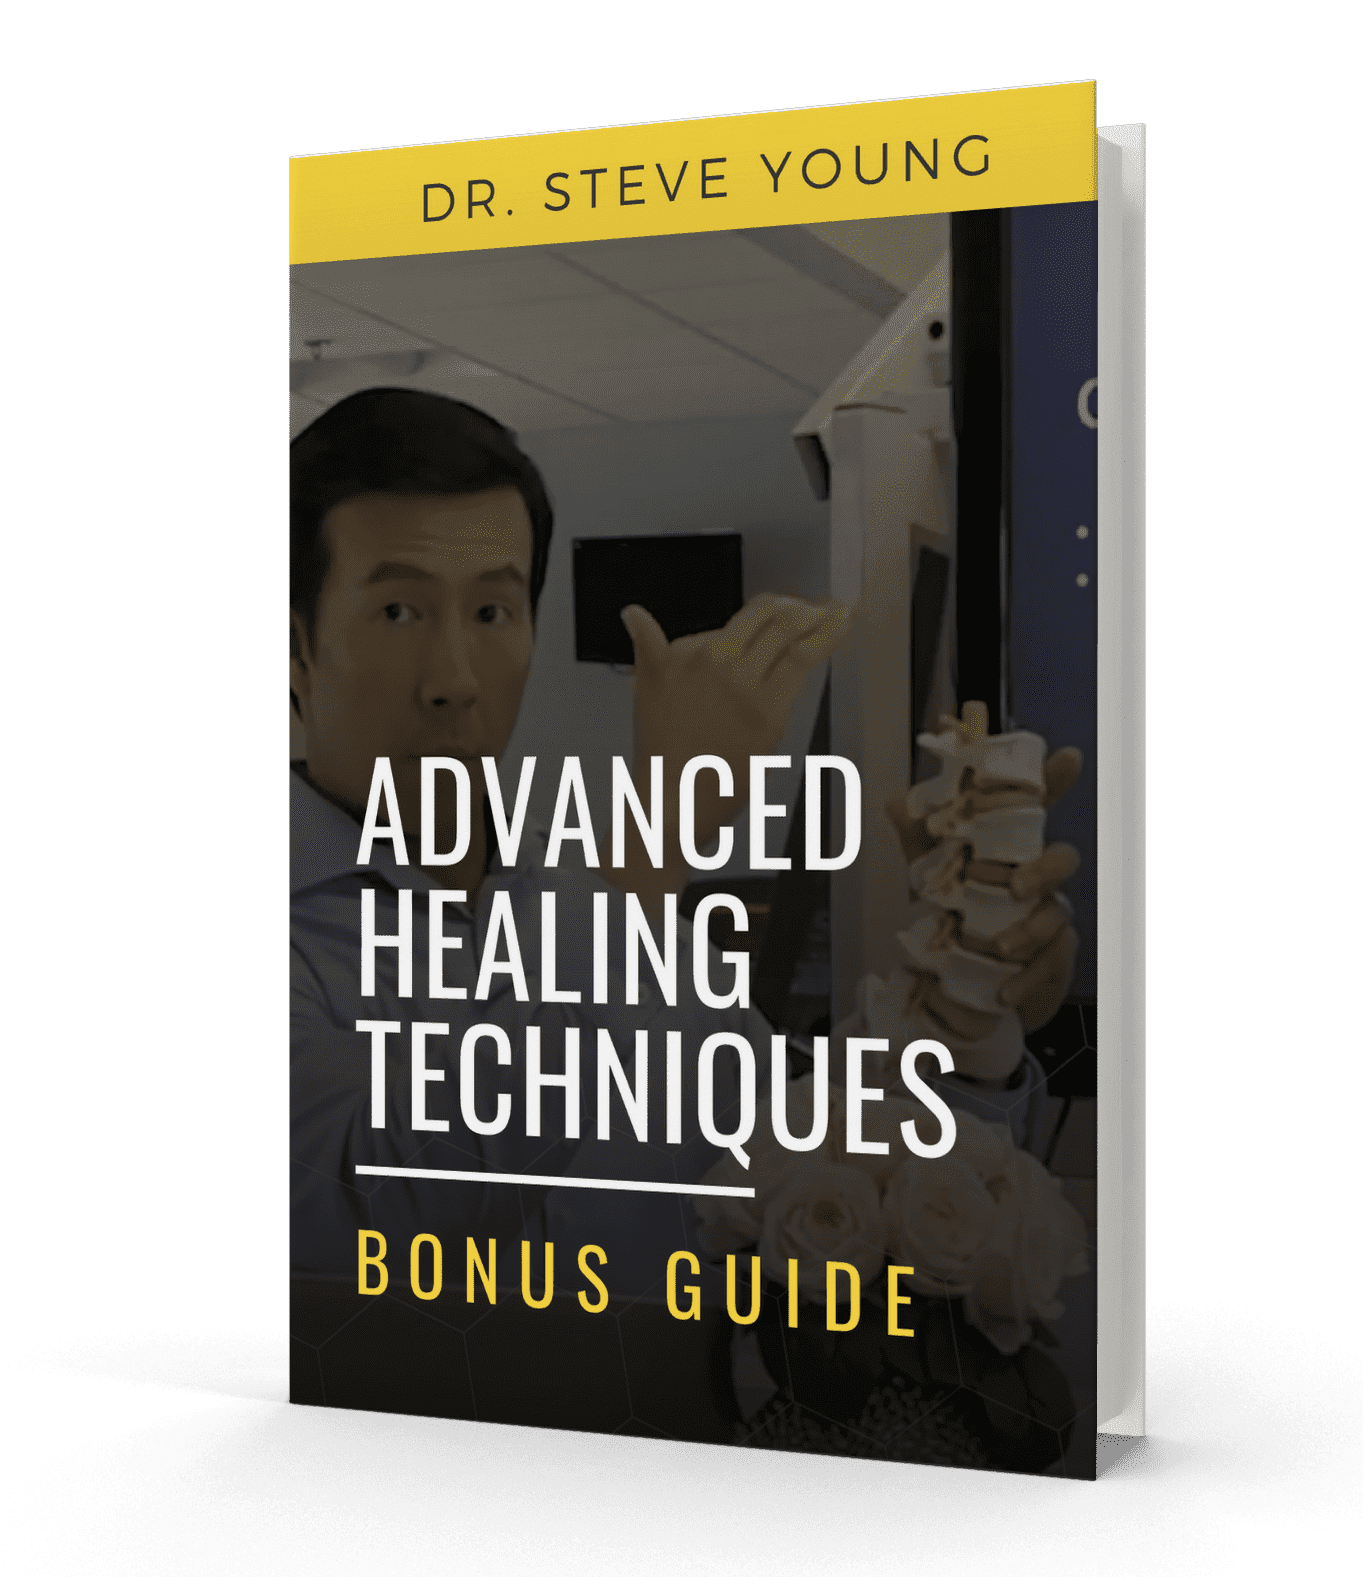 advance healing techniques bonus